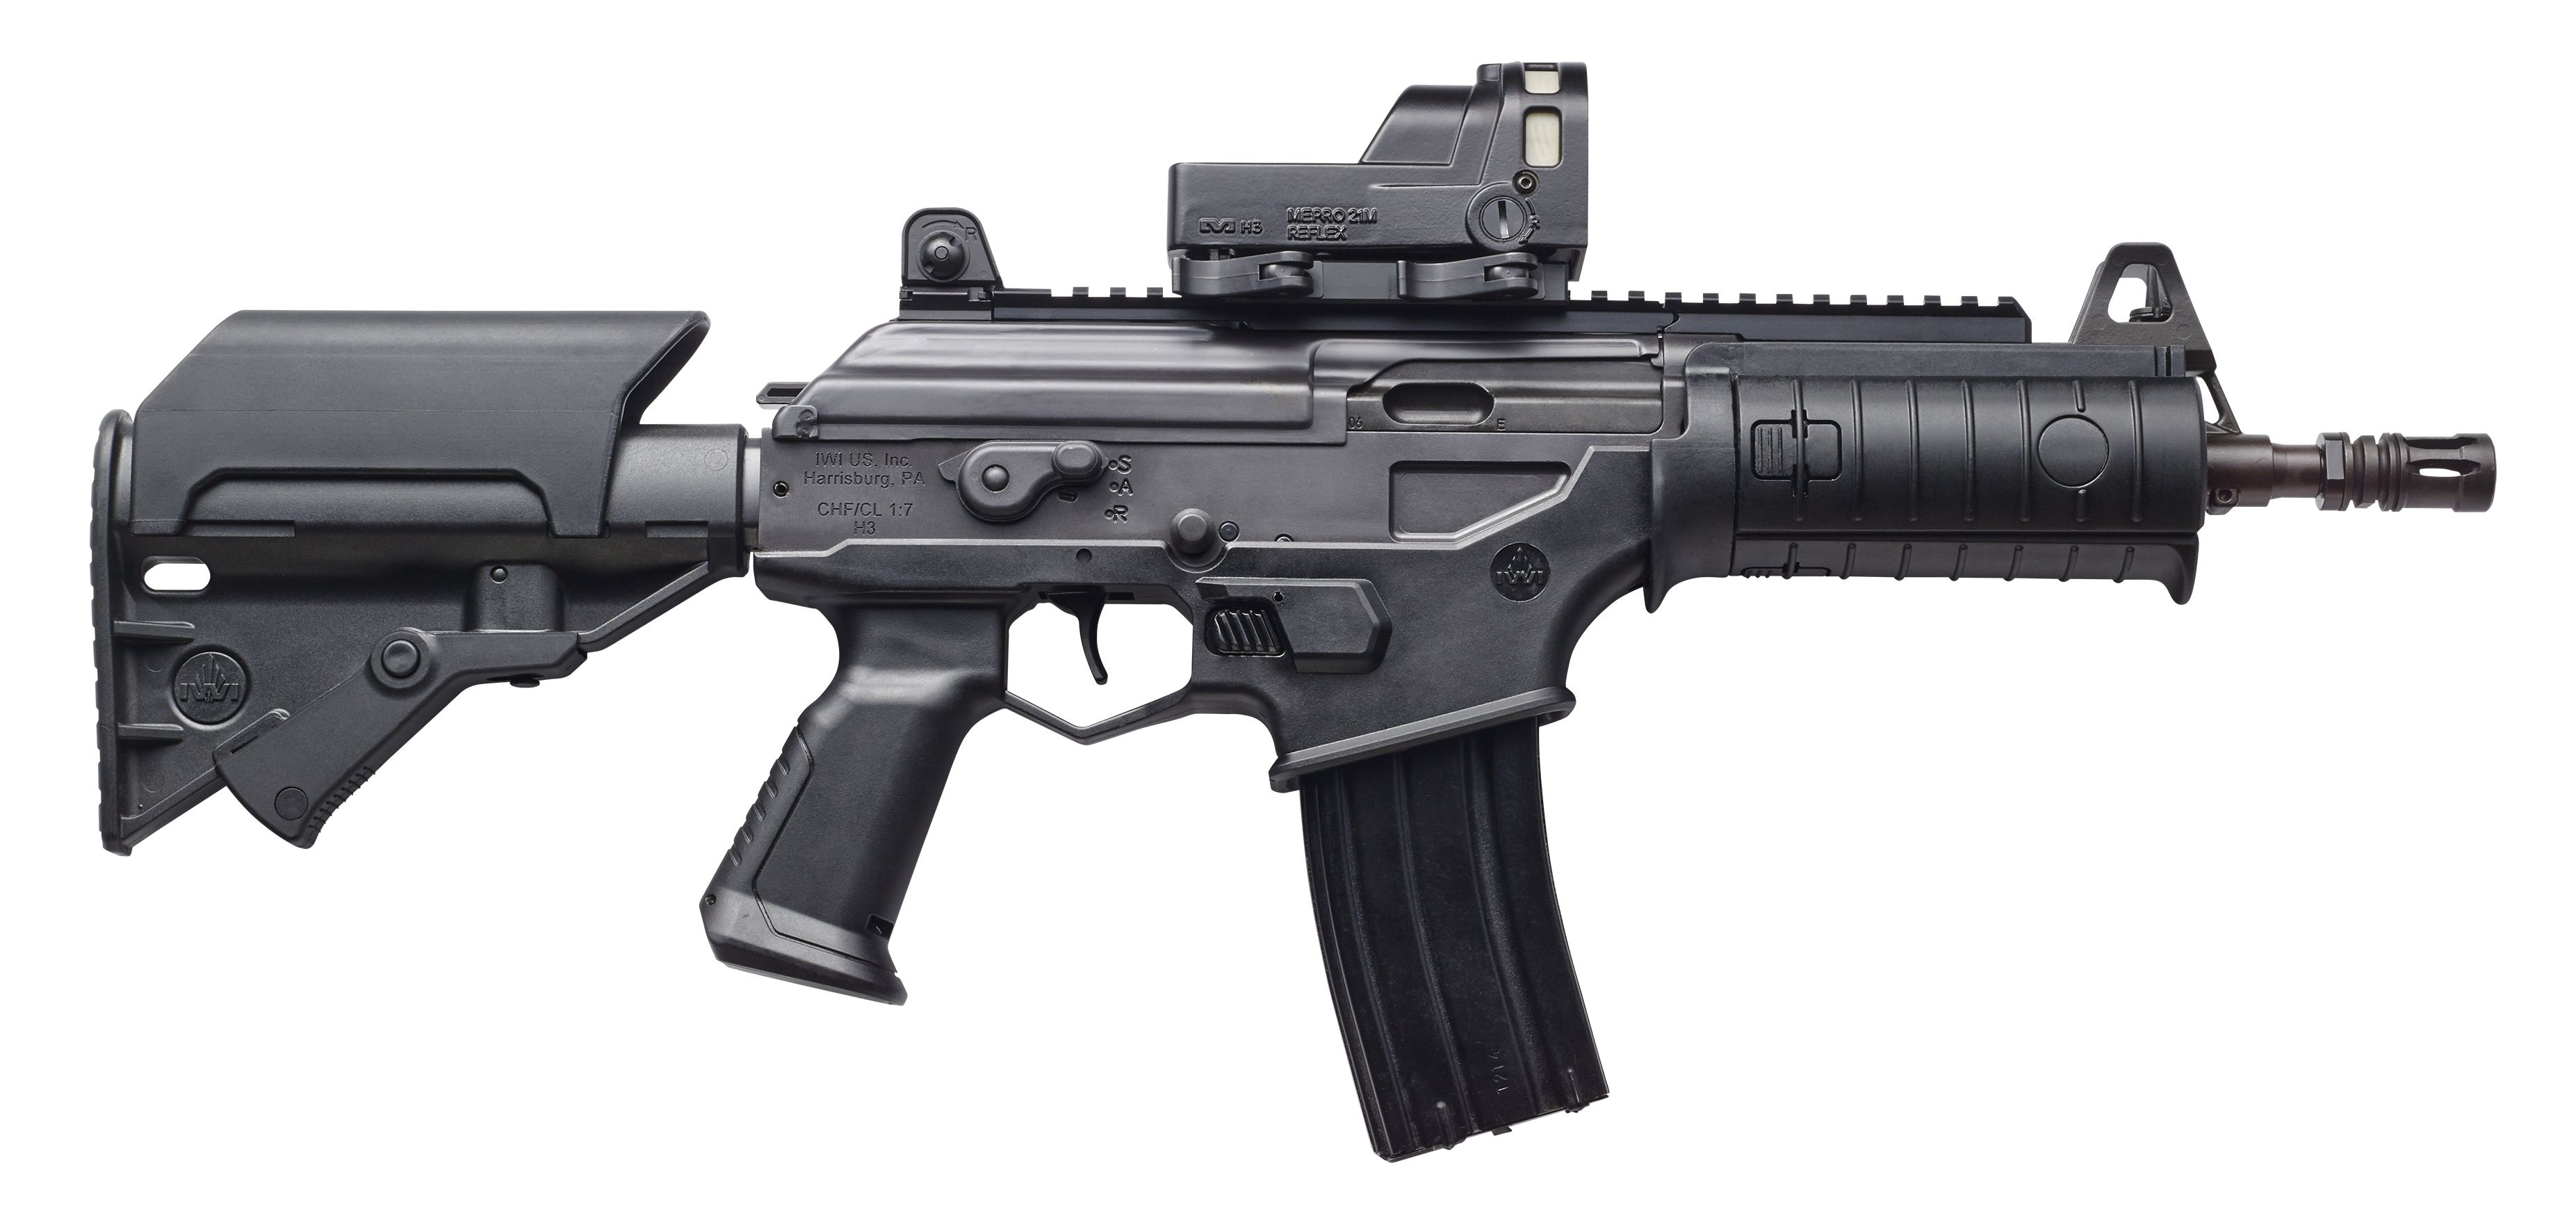 Image result for galil ace 21 | Weapons | Pinterest